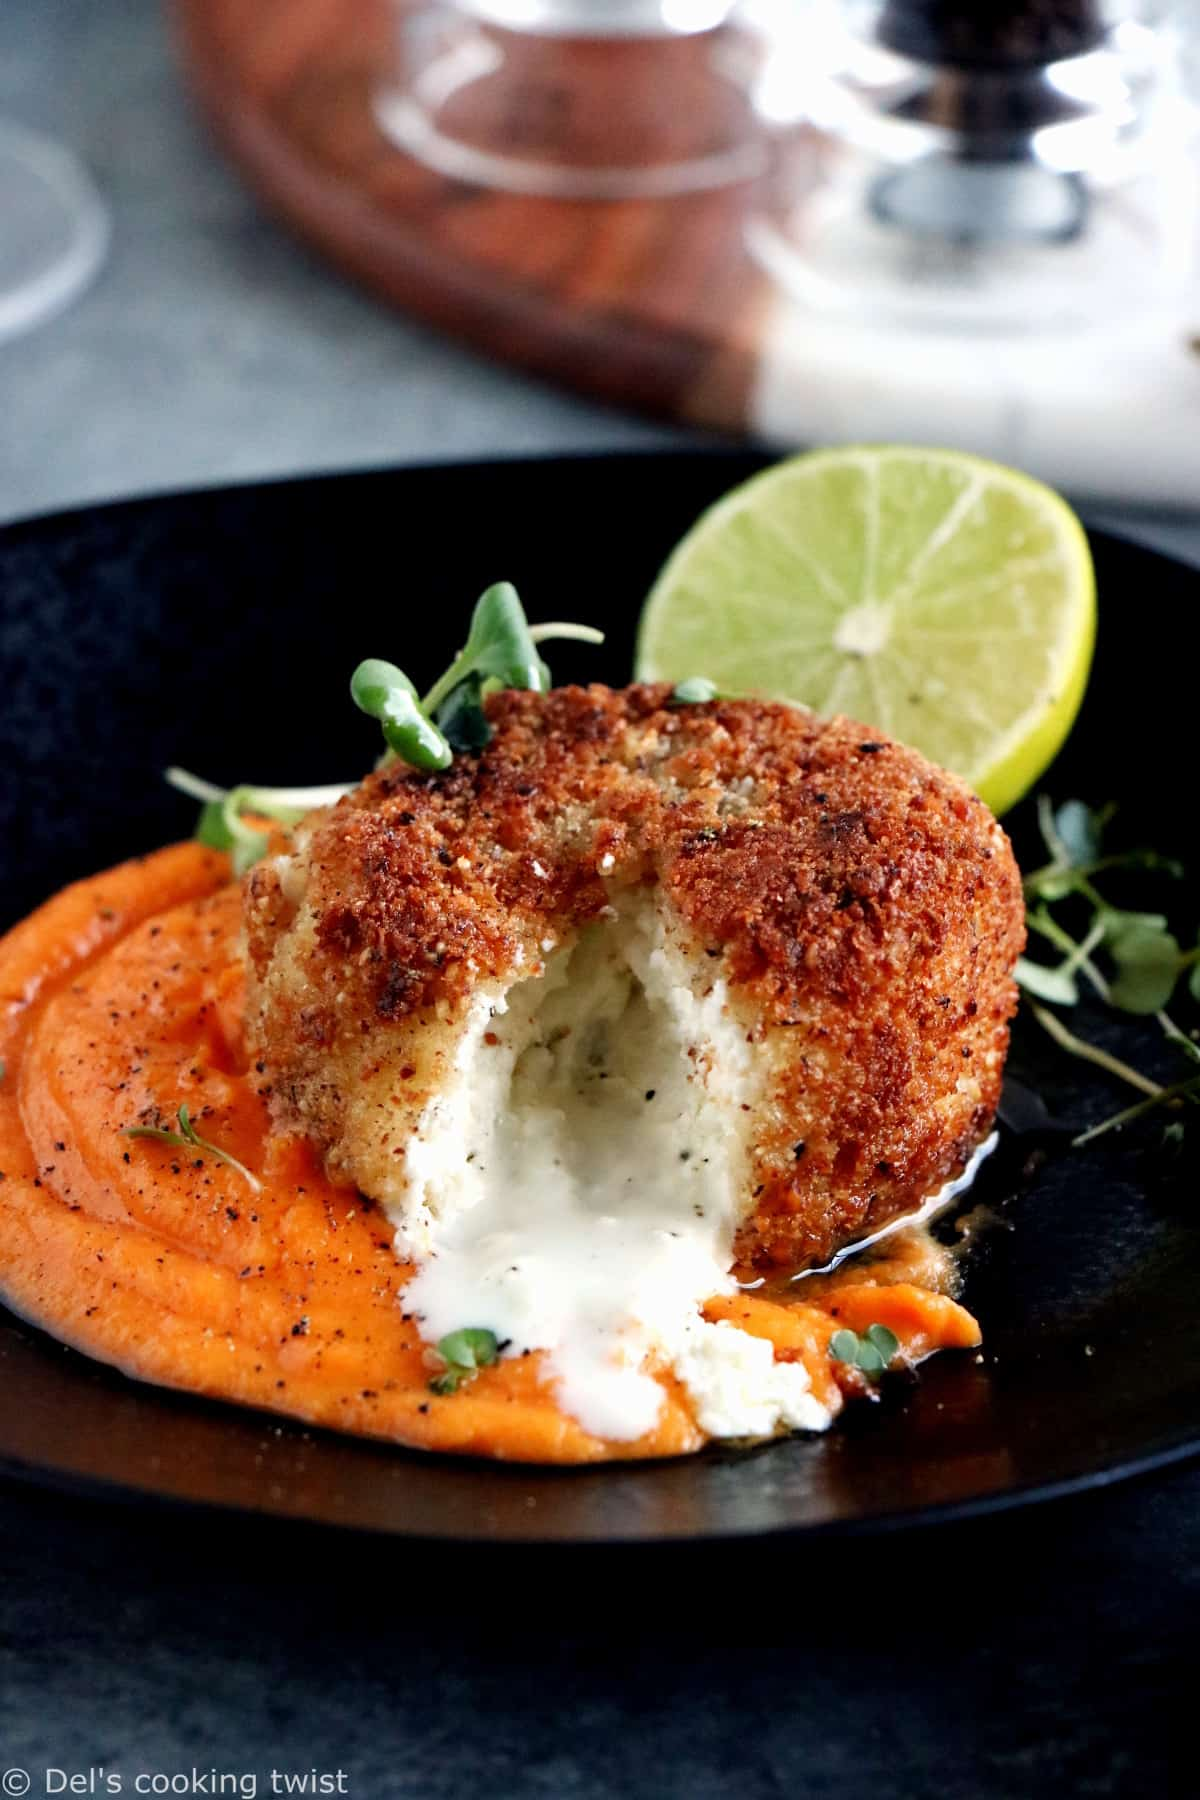 This warm hazelnut-crusted goat cheese recipe is game-changing and packed with warm, hearty and comforting flavors.